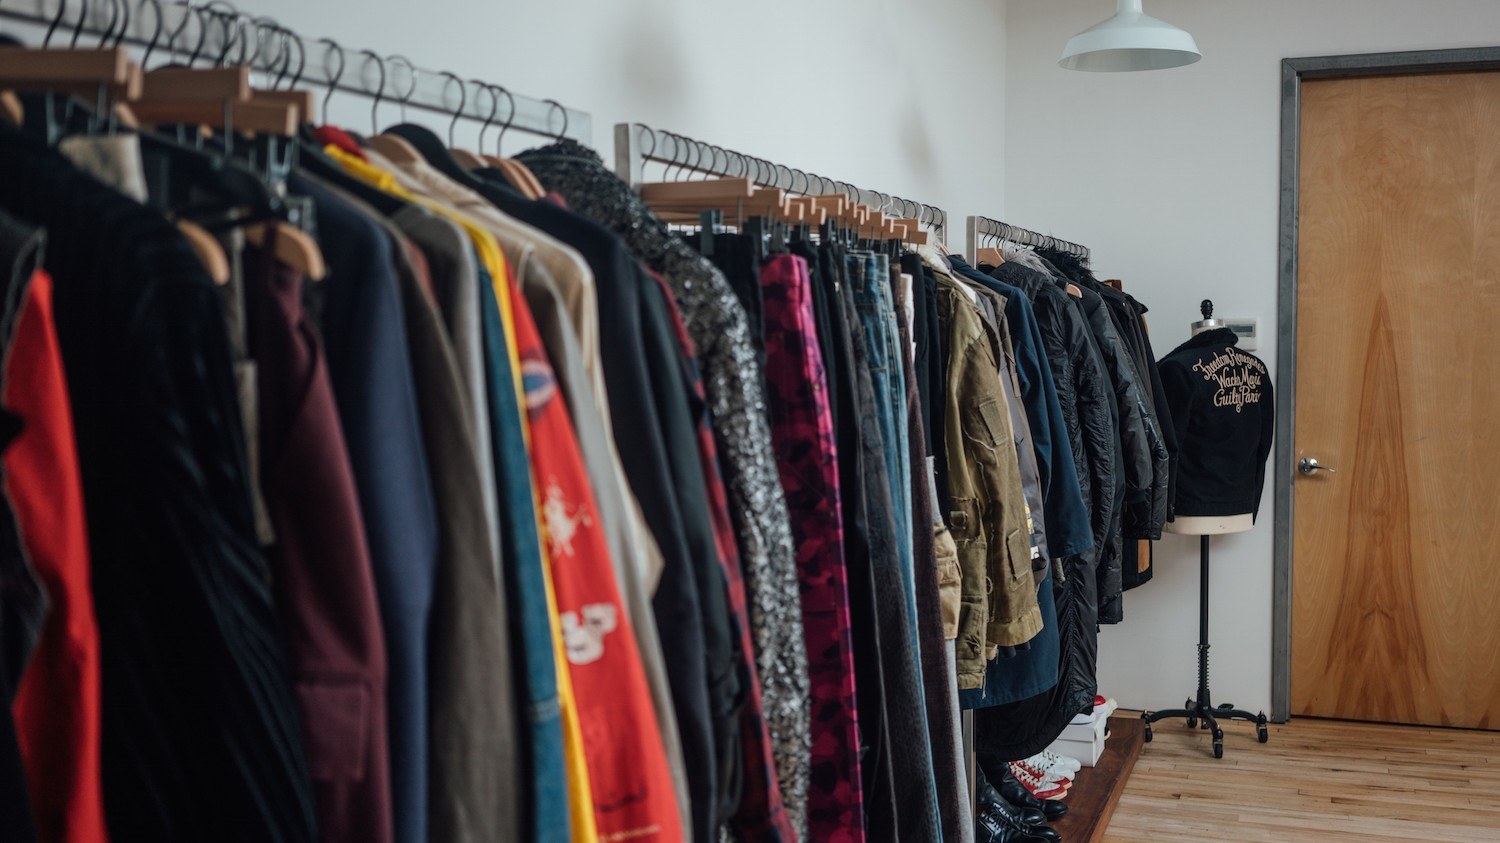 The Startup That Wants to Help You Find High-End Fashion's Holy Grails